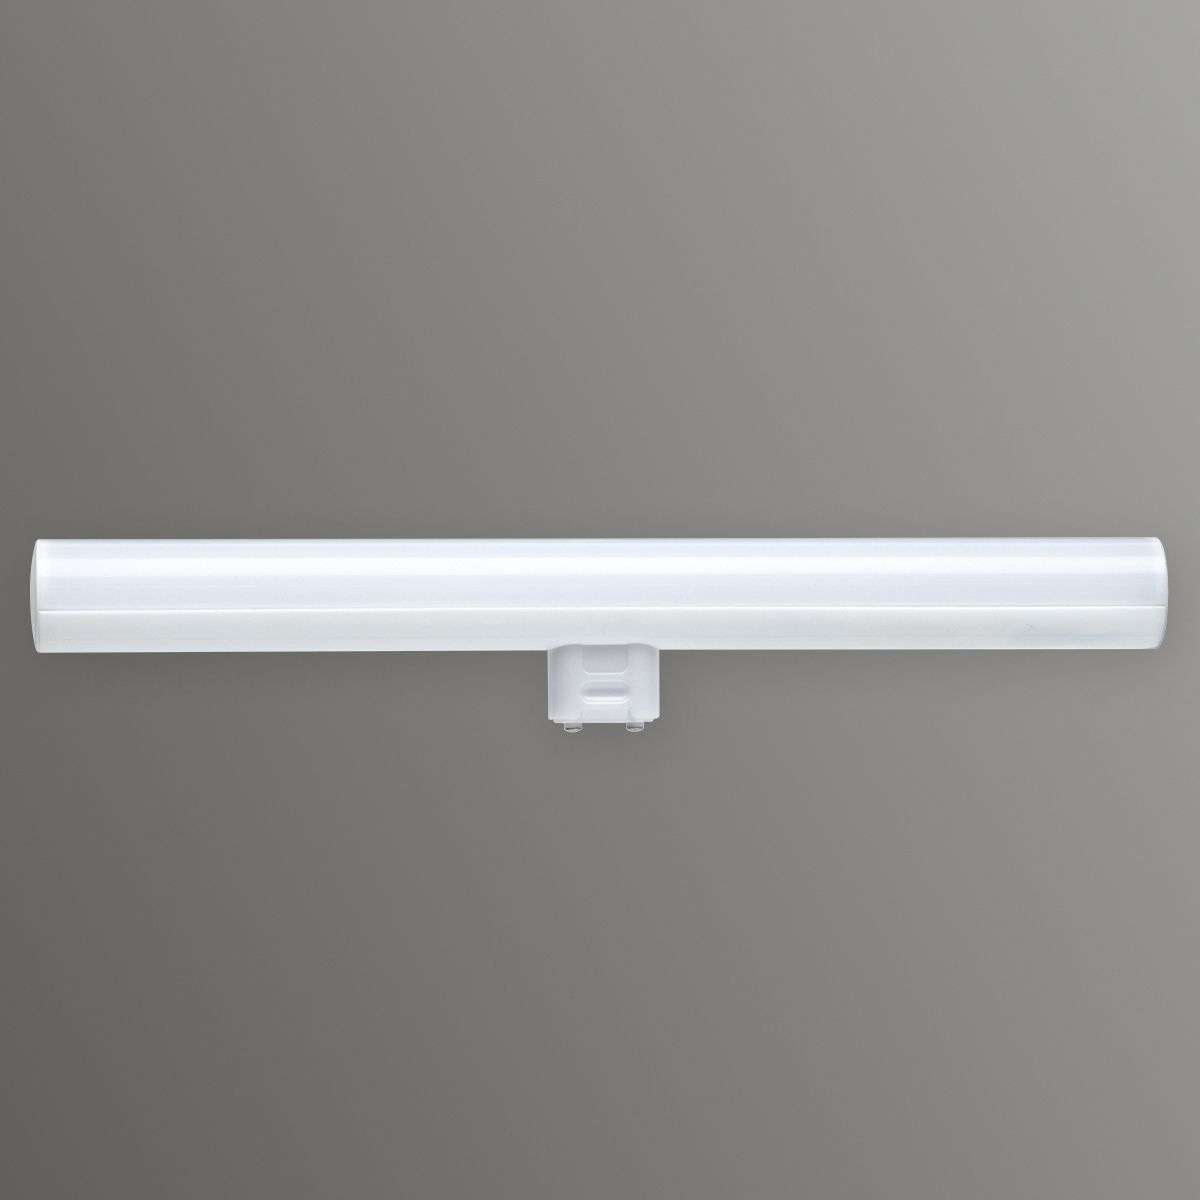 efficient savills light linear led products lighting attachment systems sydney